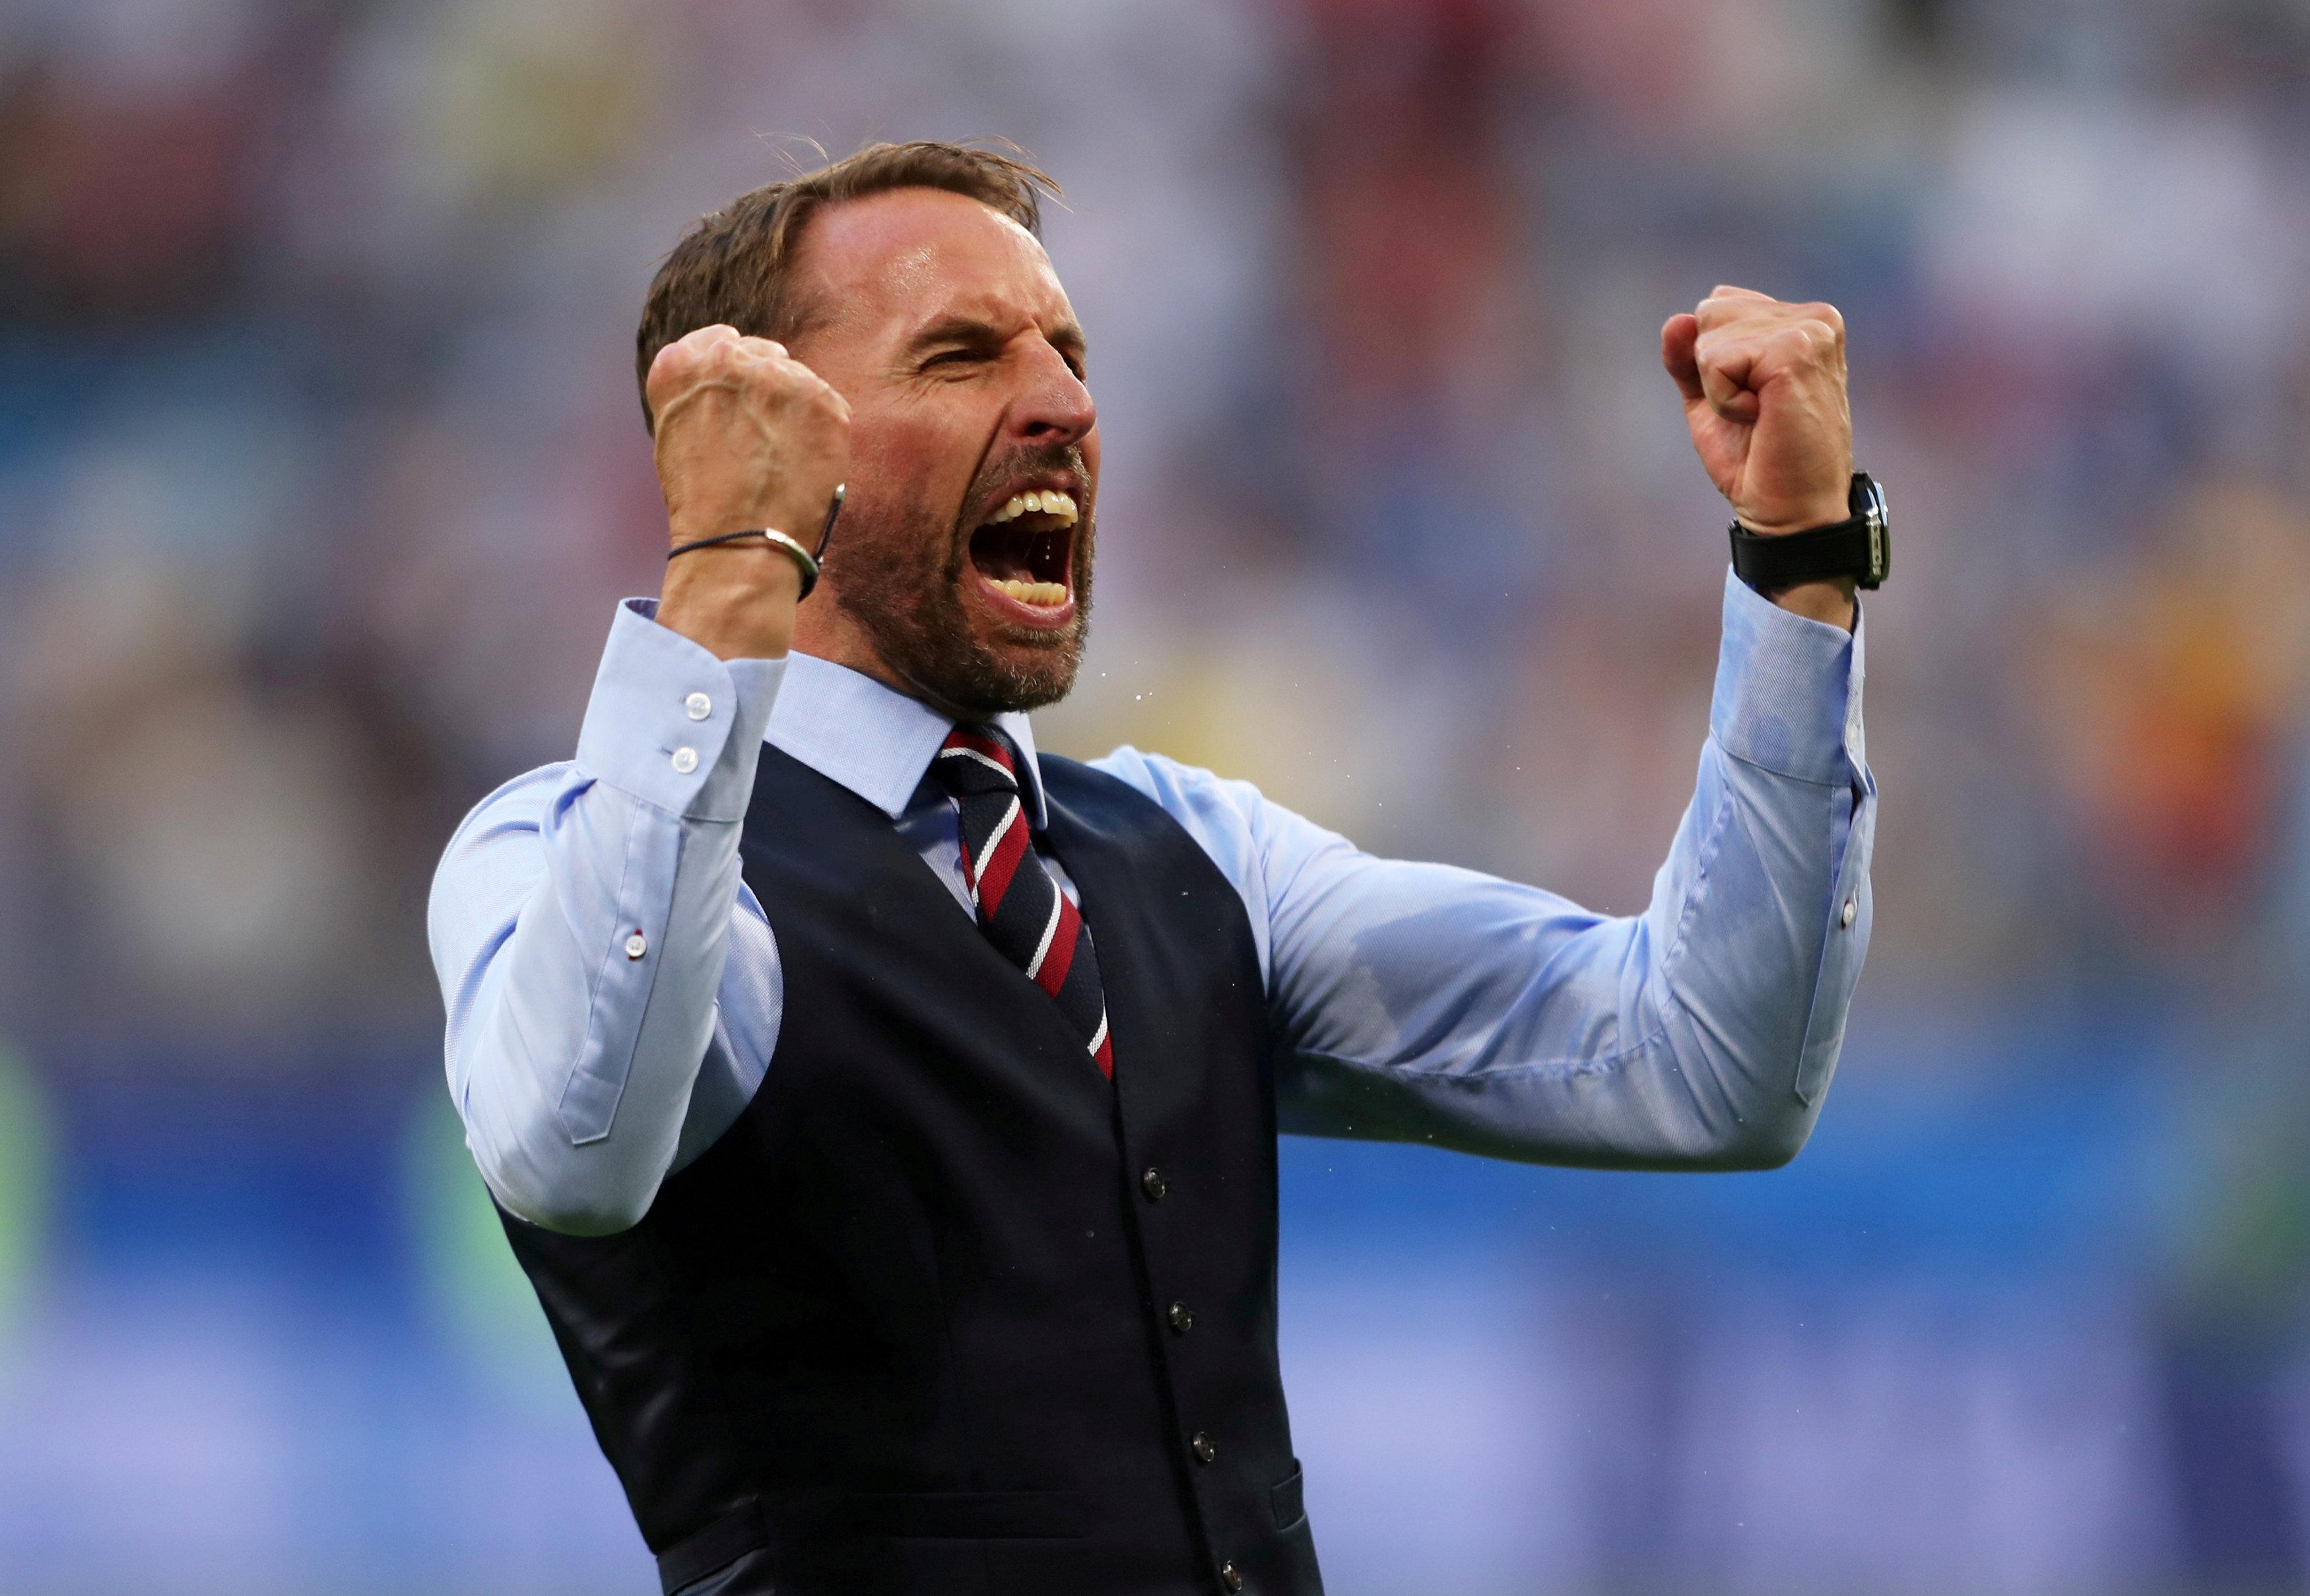 Southgate was praised throughout the tournament for his attitude and coaching methods